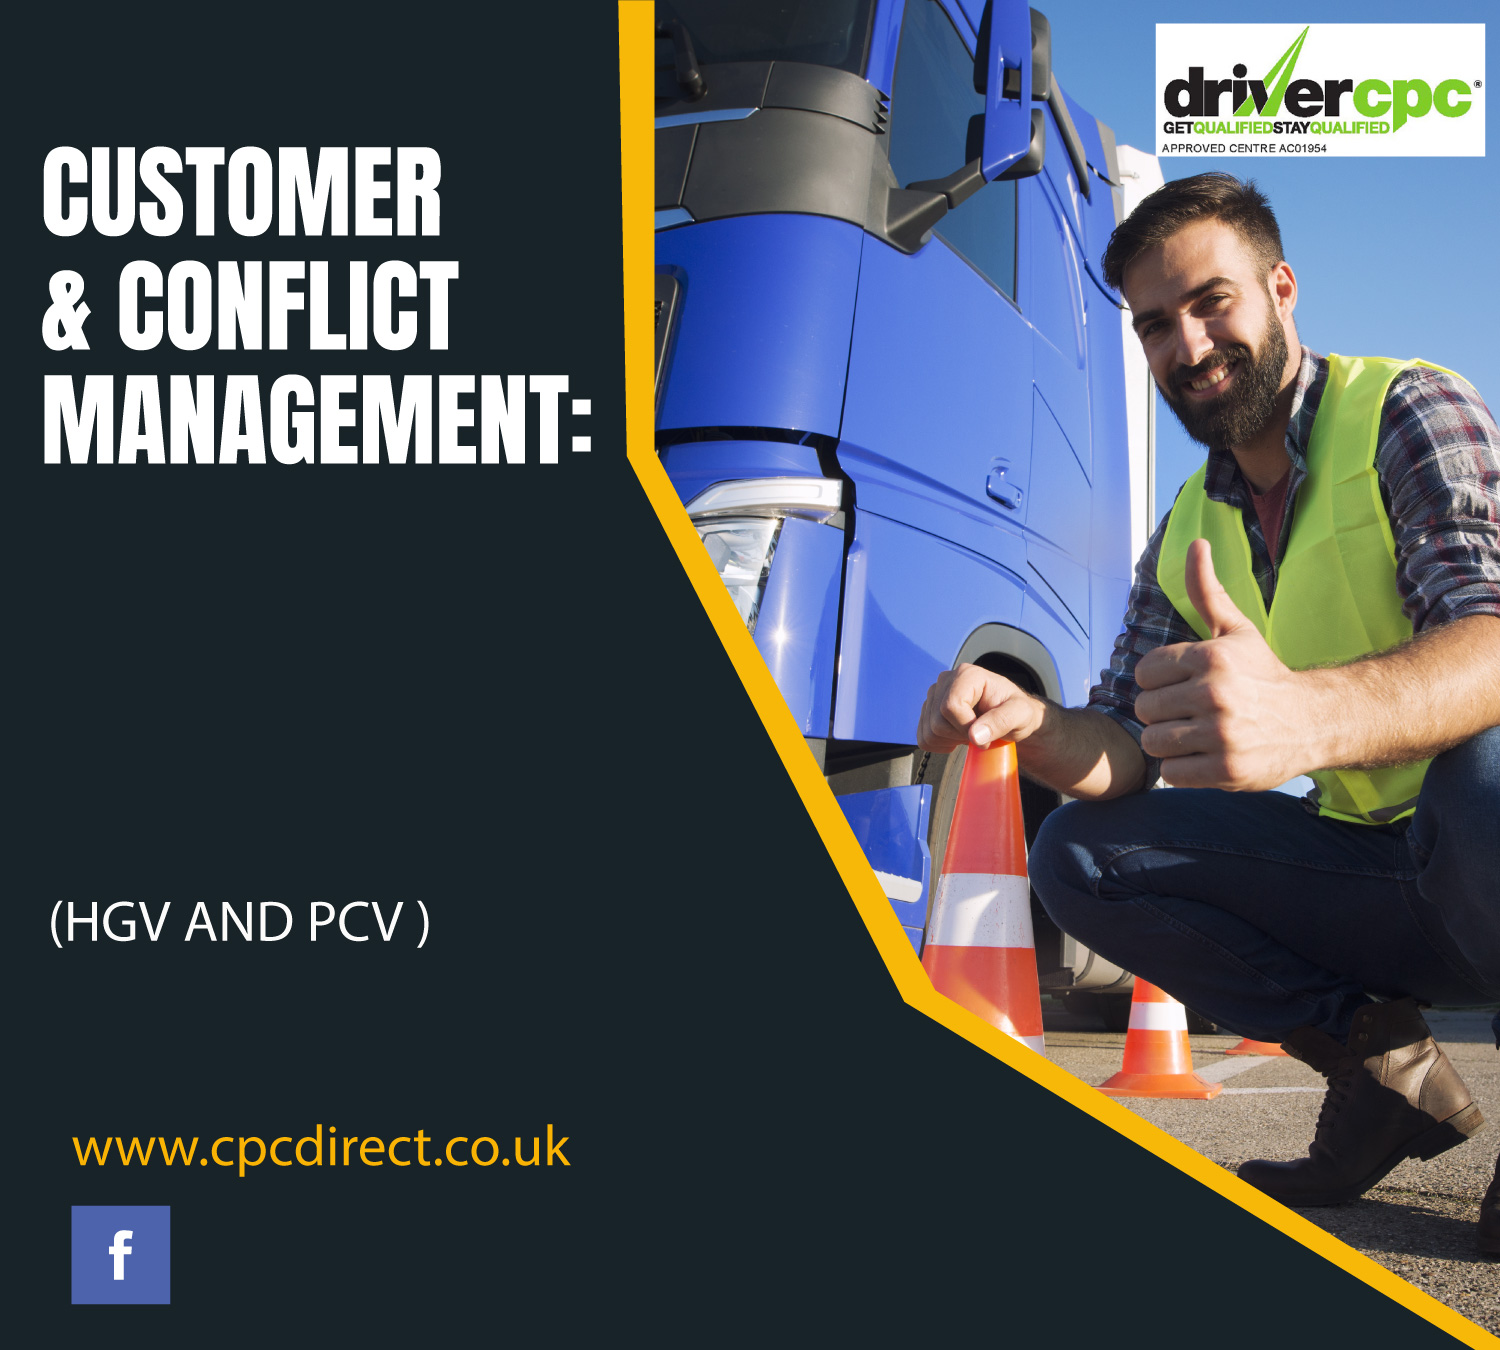 Customer & Conflict Management Driver CPC Course